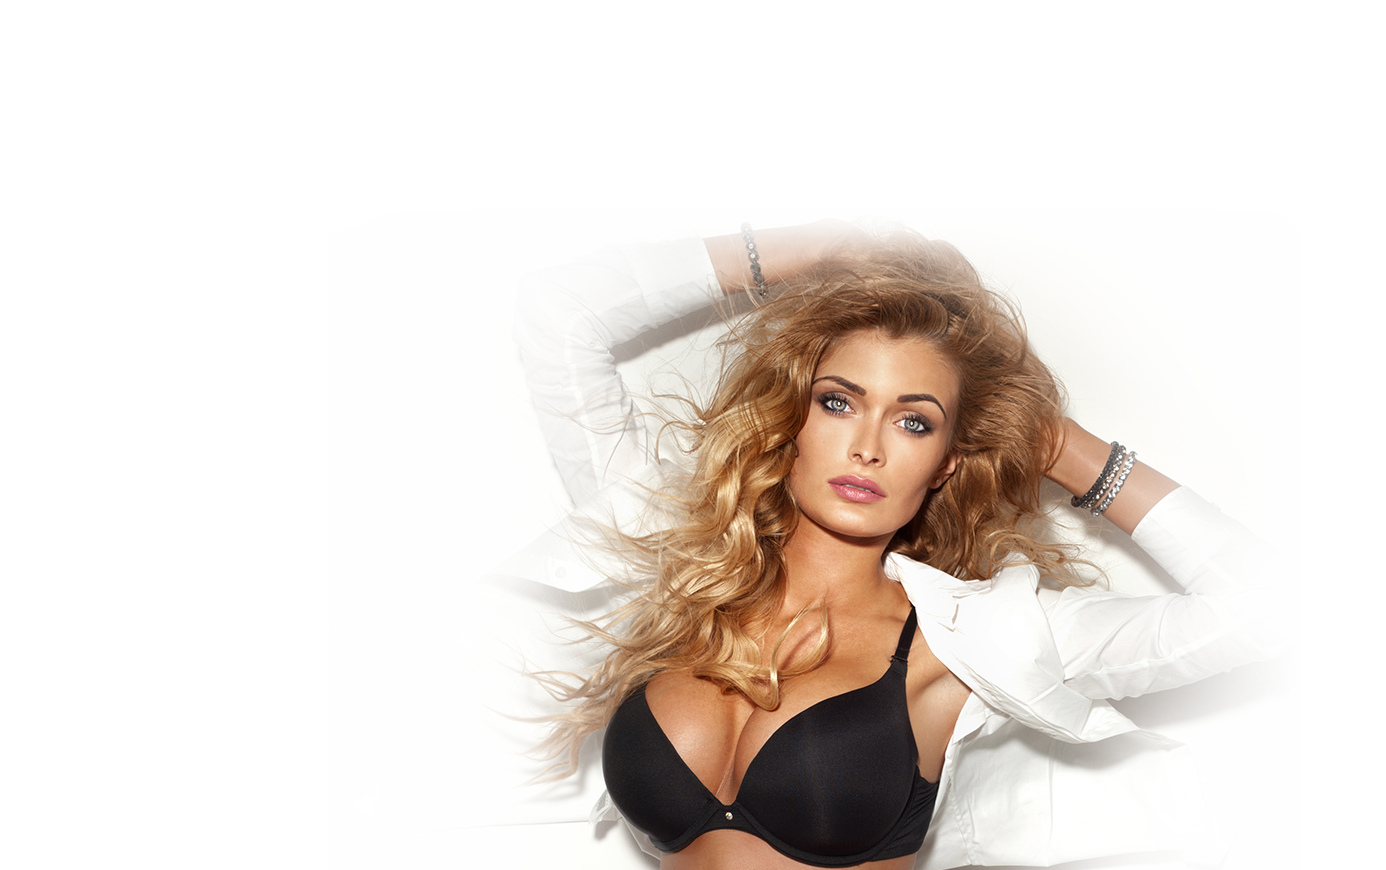 Revision Breast Augmentation model